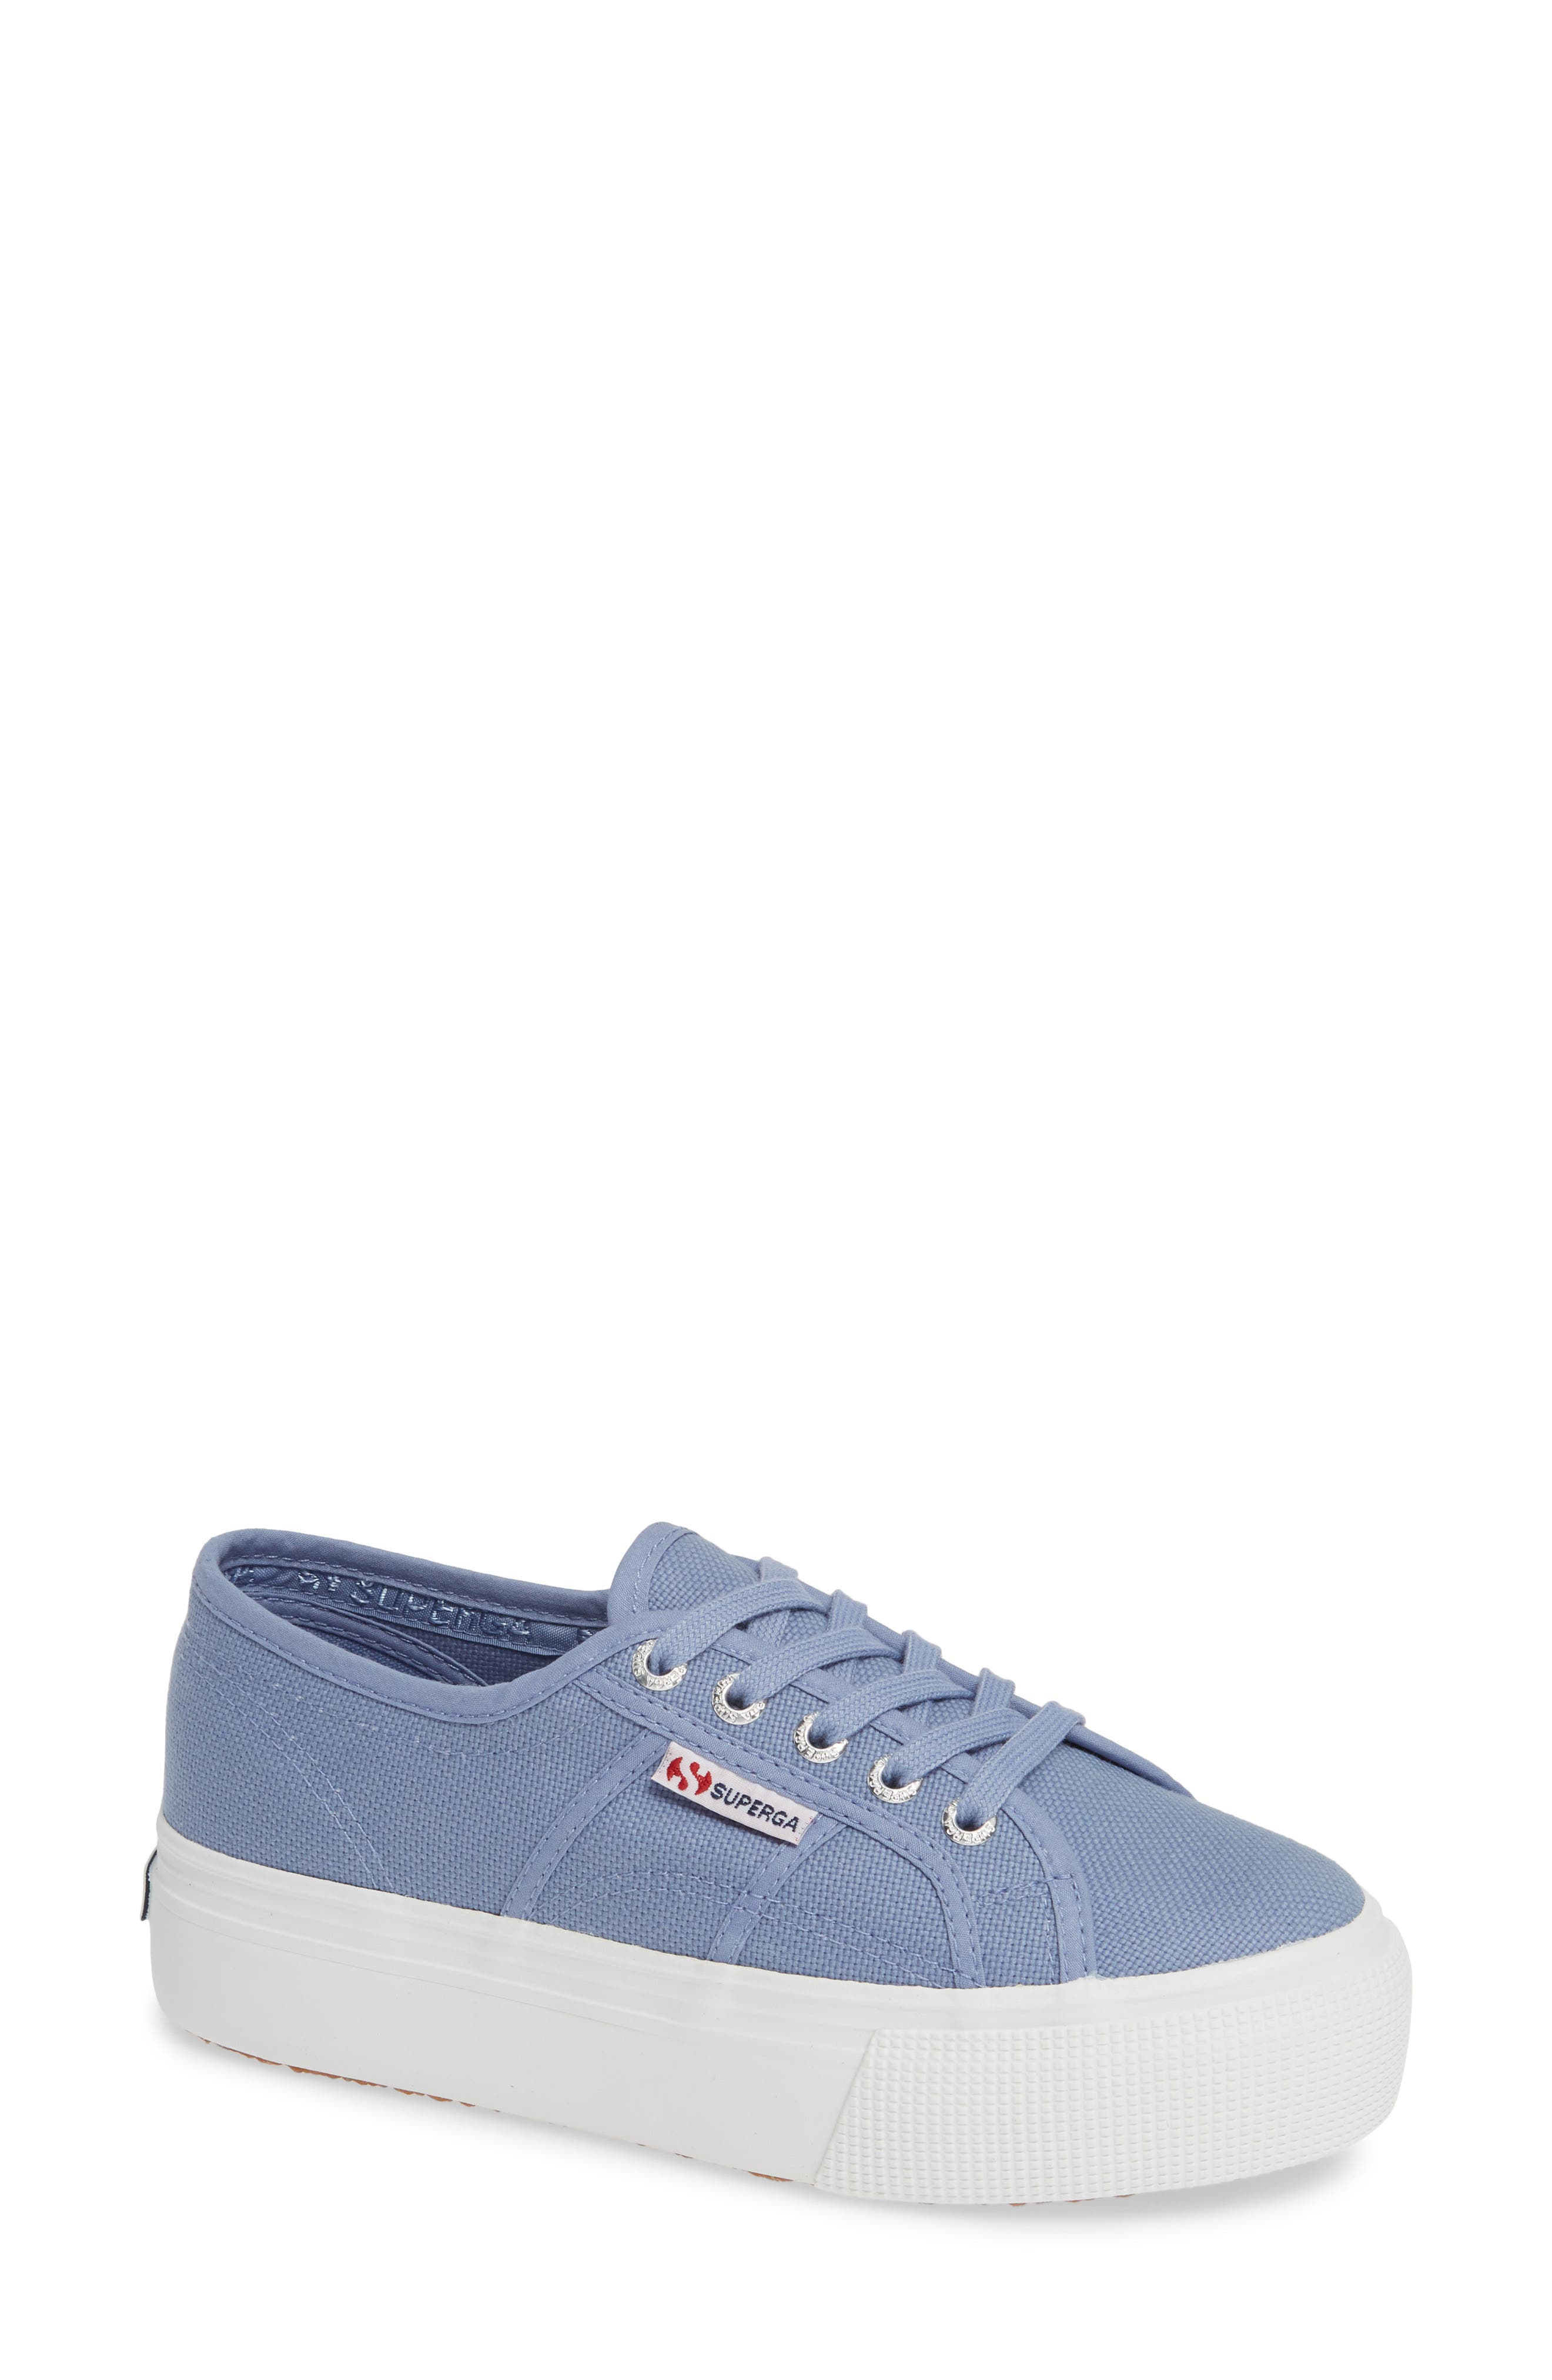 Sneakers Nordstrom Superga Superga Sneakers amp; Shoes Shoes Nordstrom amp; Superga Sneakers Shoes amp; A5RqU7